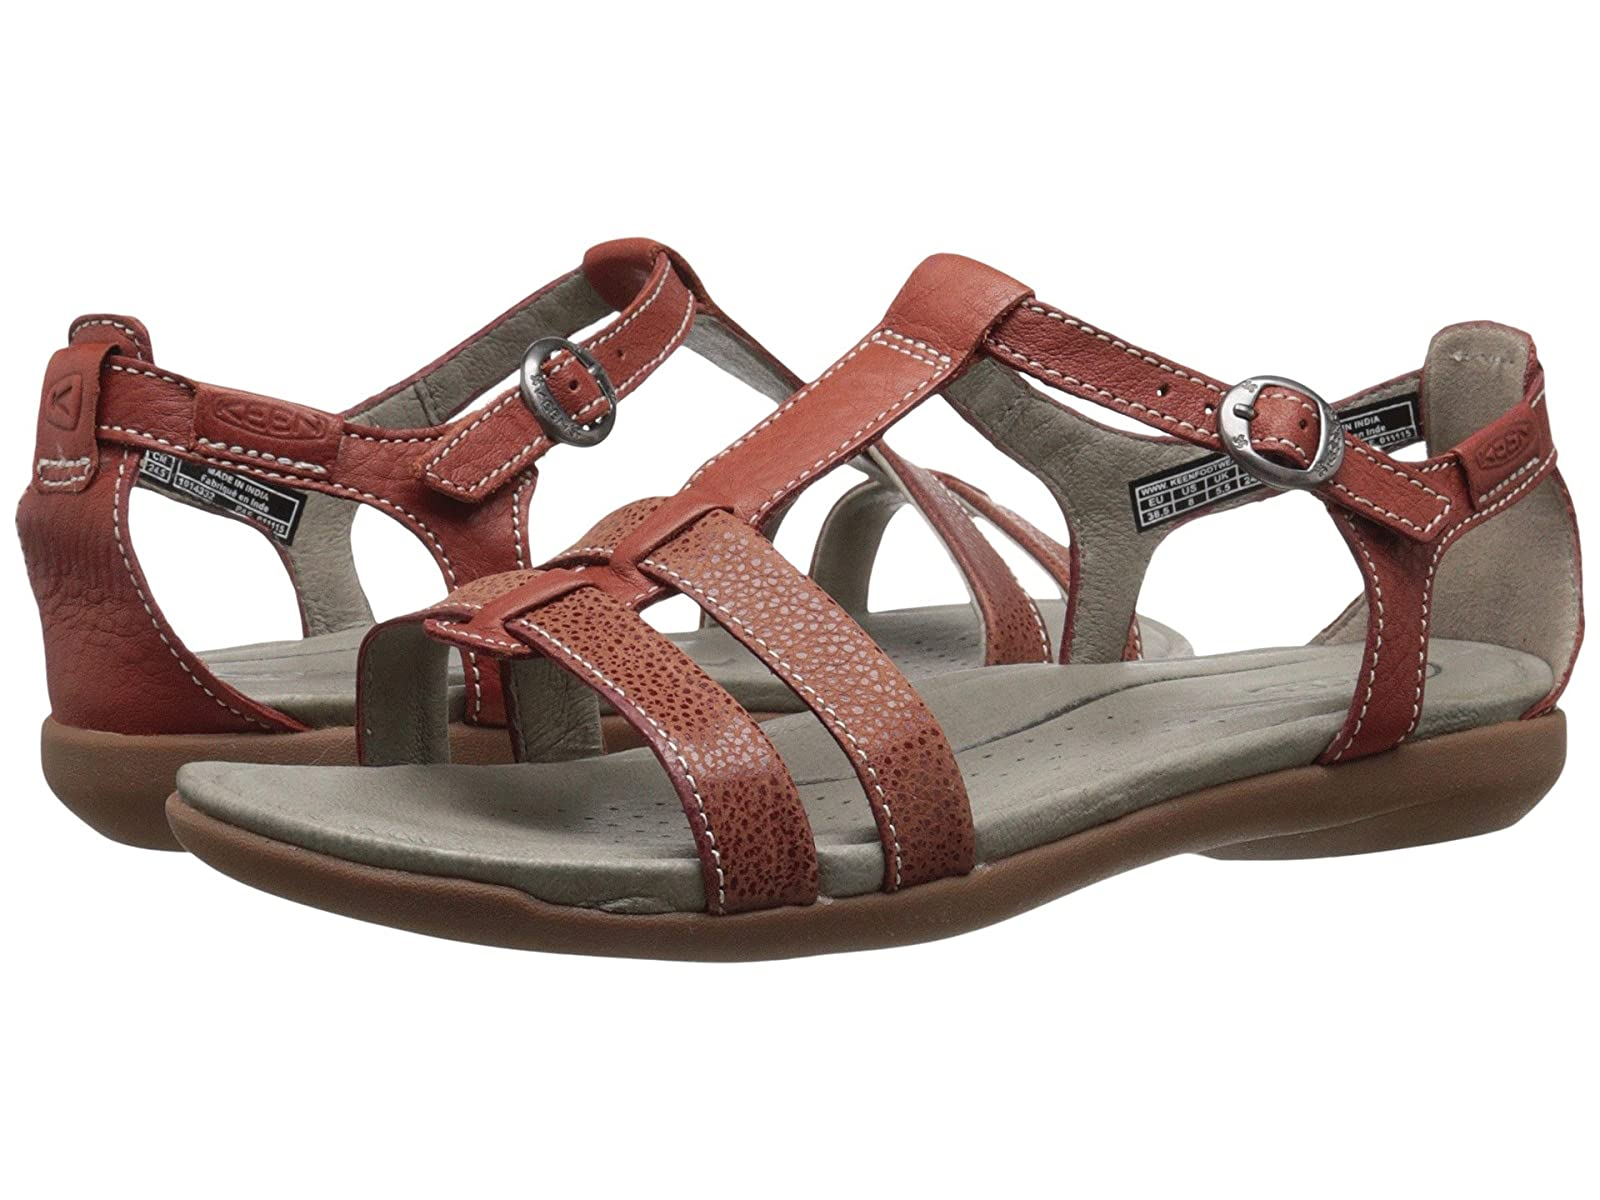 Keen Rose City T-StrapCheap and distinctive eye-catching shoes